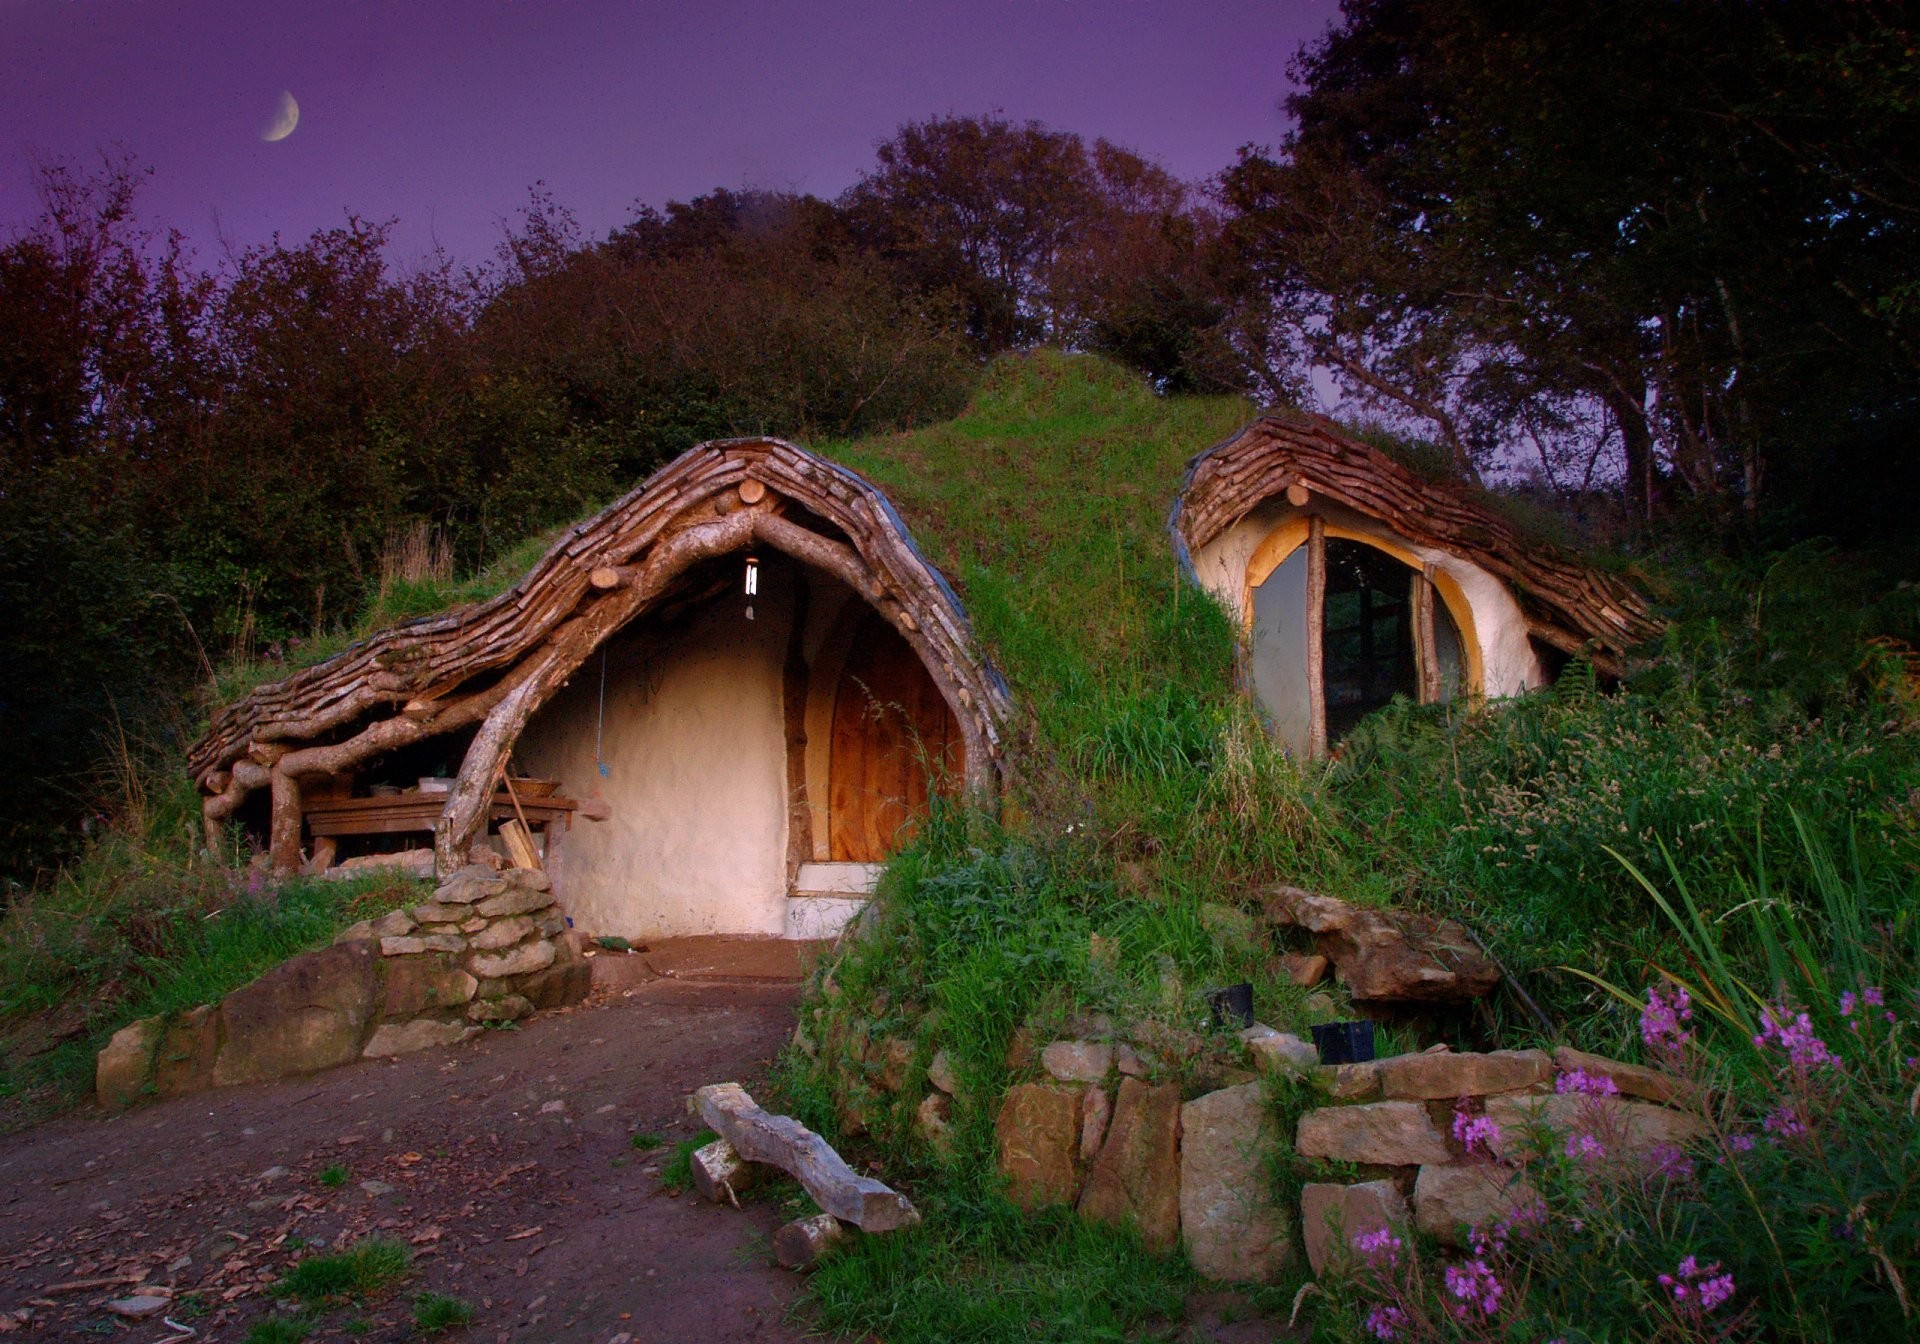 the lord of the rings john ronald reuel tolkien the shire hobbiton bag-end  bilbo